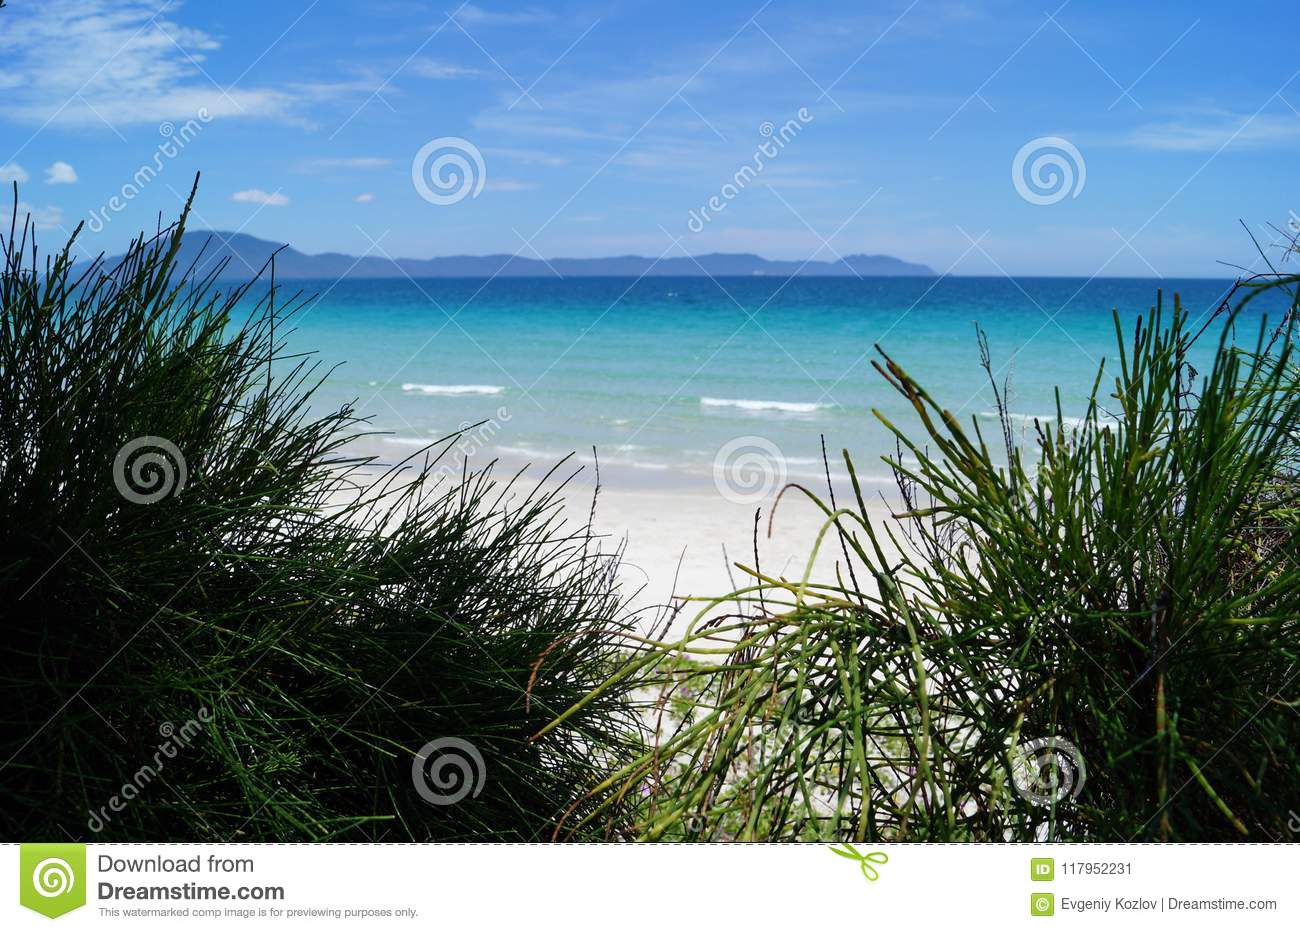 Blurred Sea View Through The Bushes Stock Image - Image of